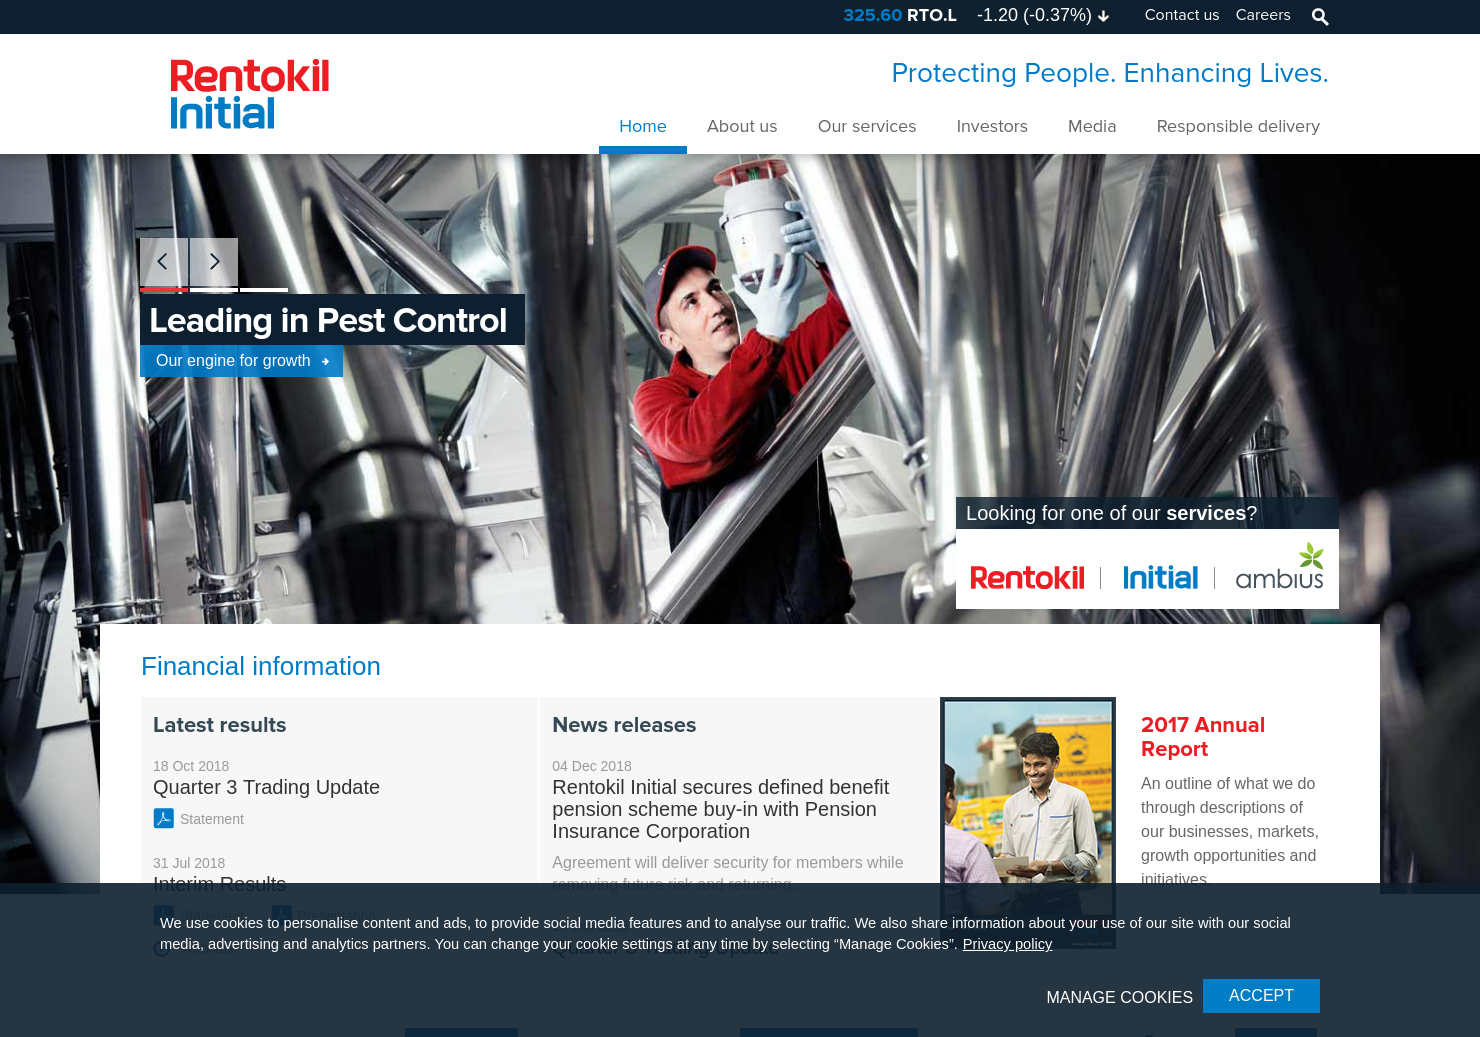 Rentokil Initial Home Page